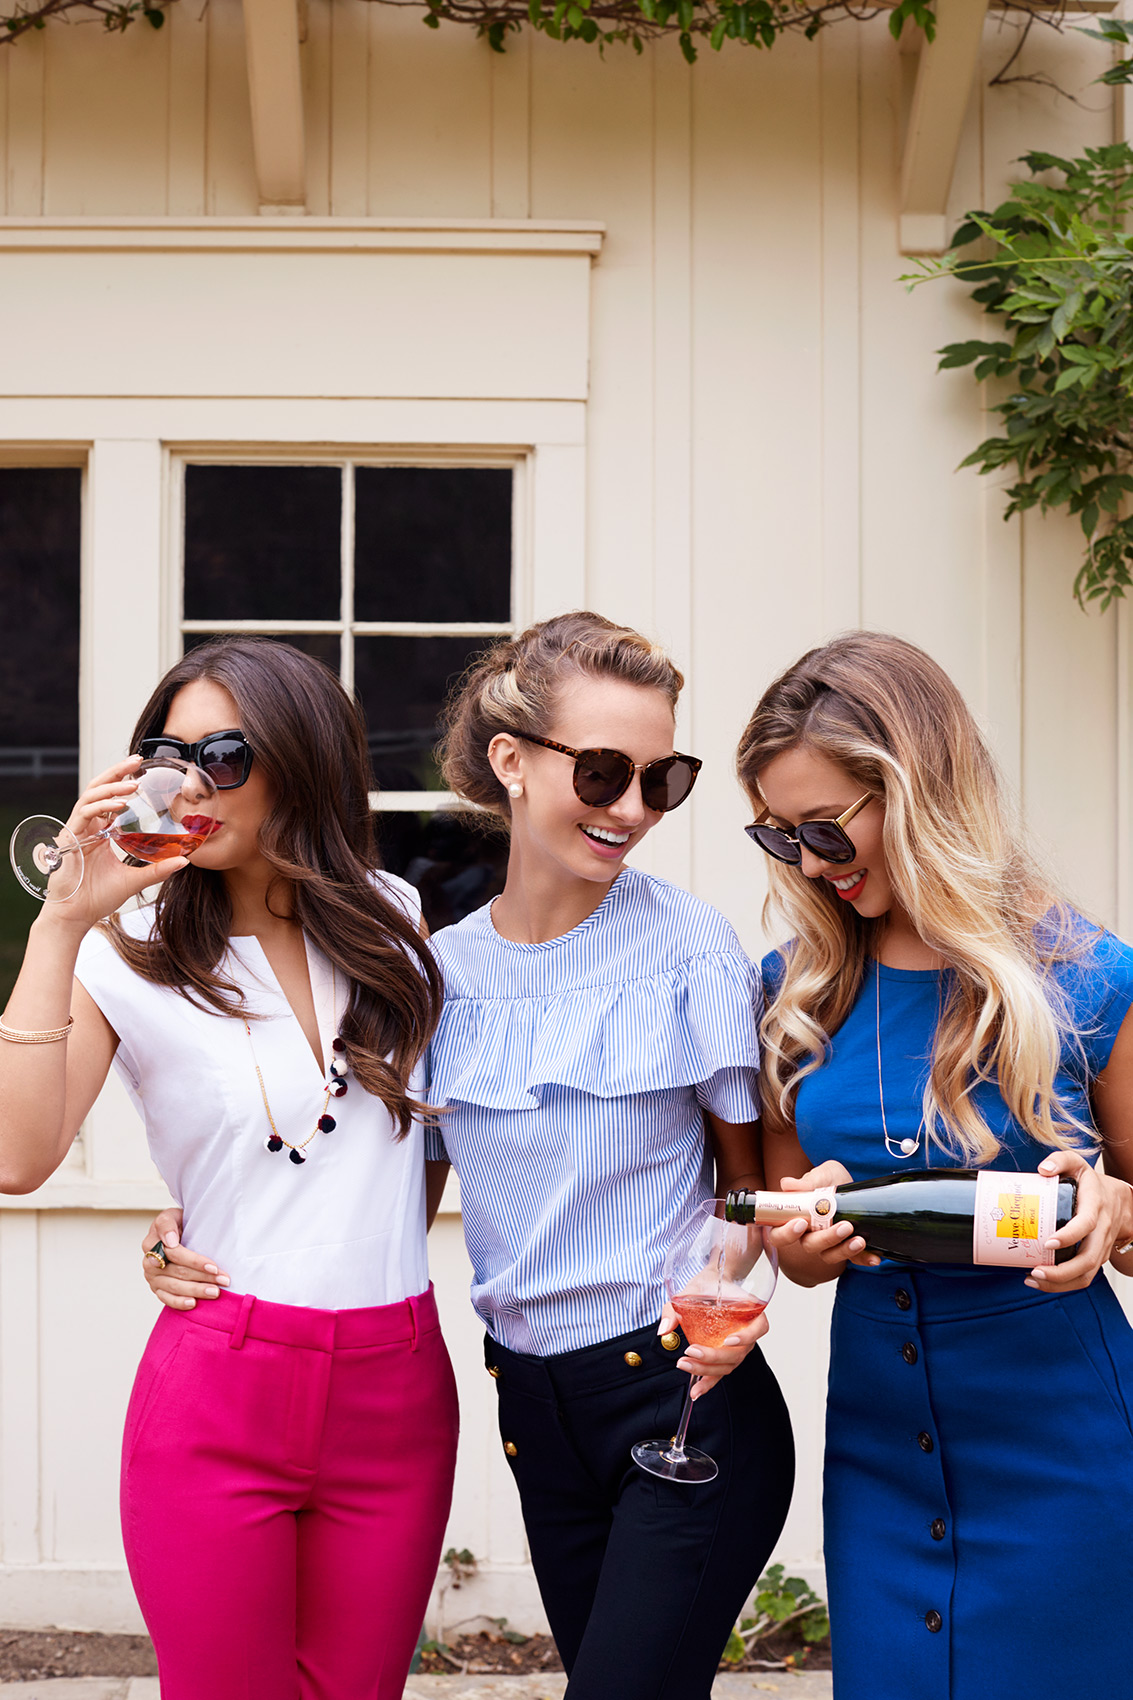 Kimberly_Genevieve_Veuve_Clicquot_Classic_Polo_Los_Angeles_07